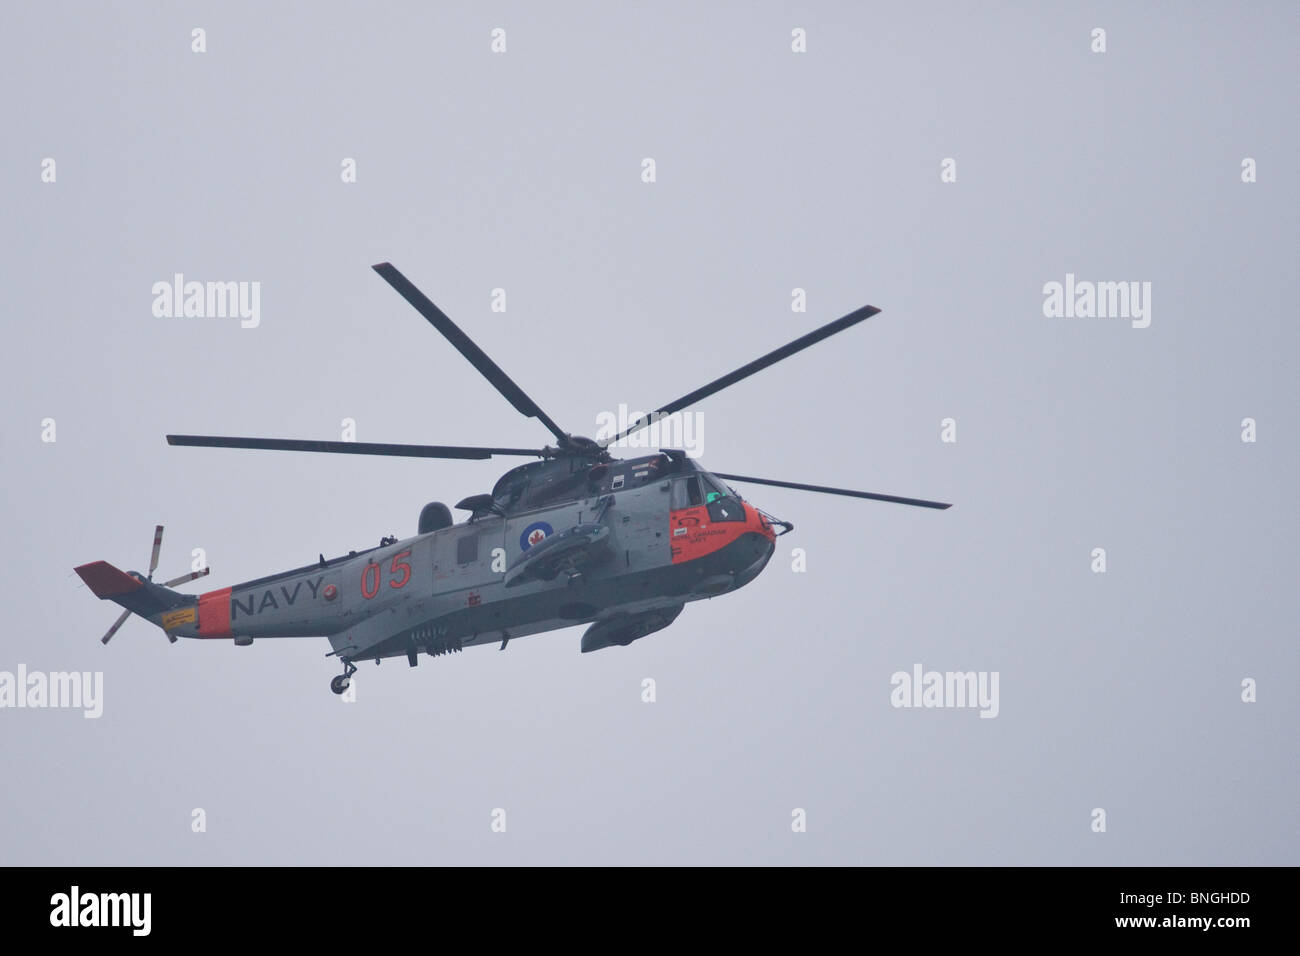 A Sea King helicopter painted in the original Royal Canadian Navy scheme flies overhead during the 2010 Fleet Review. - Stock Image